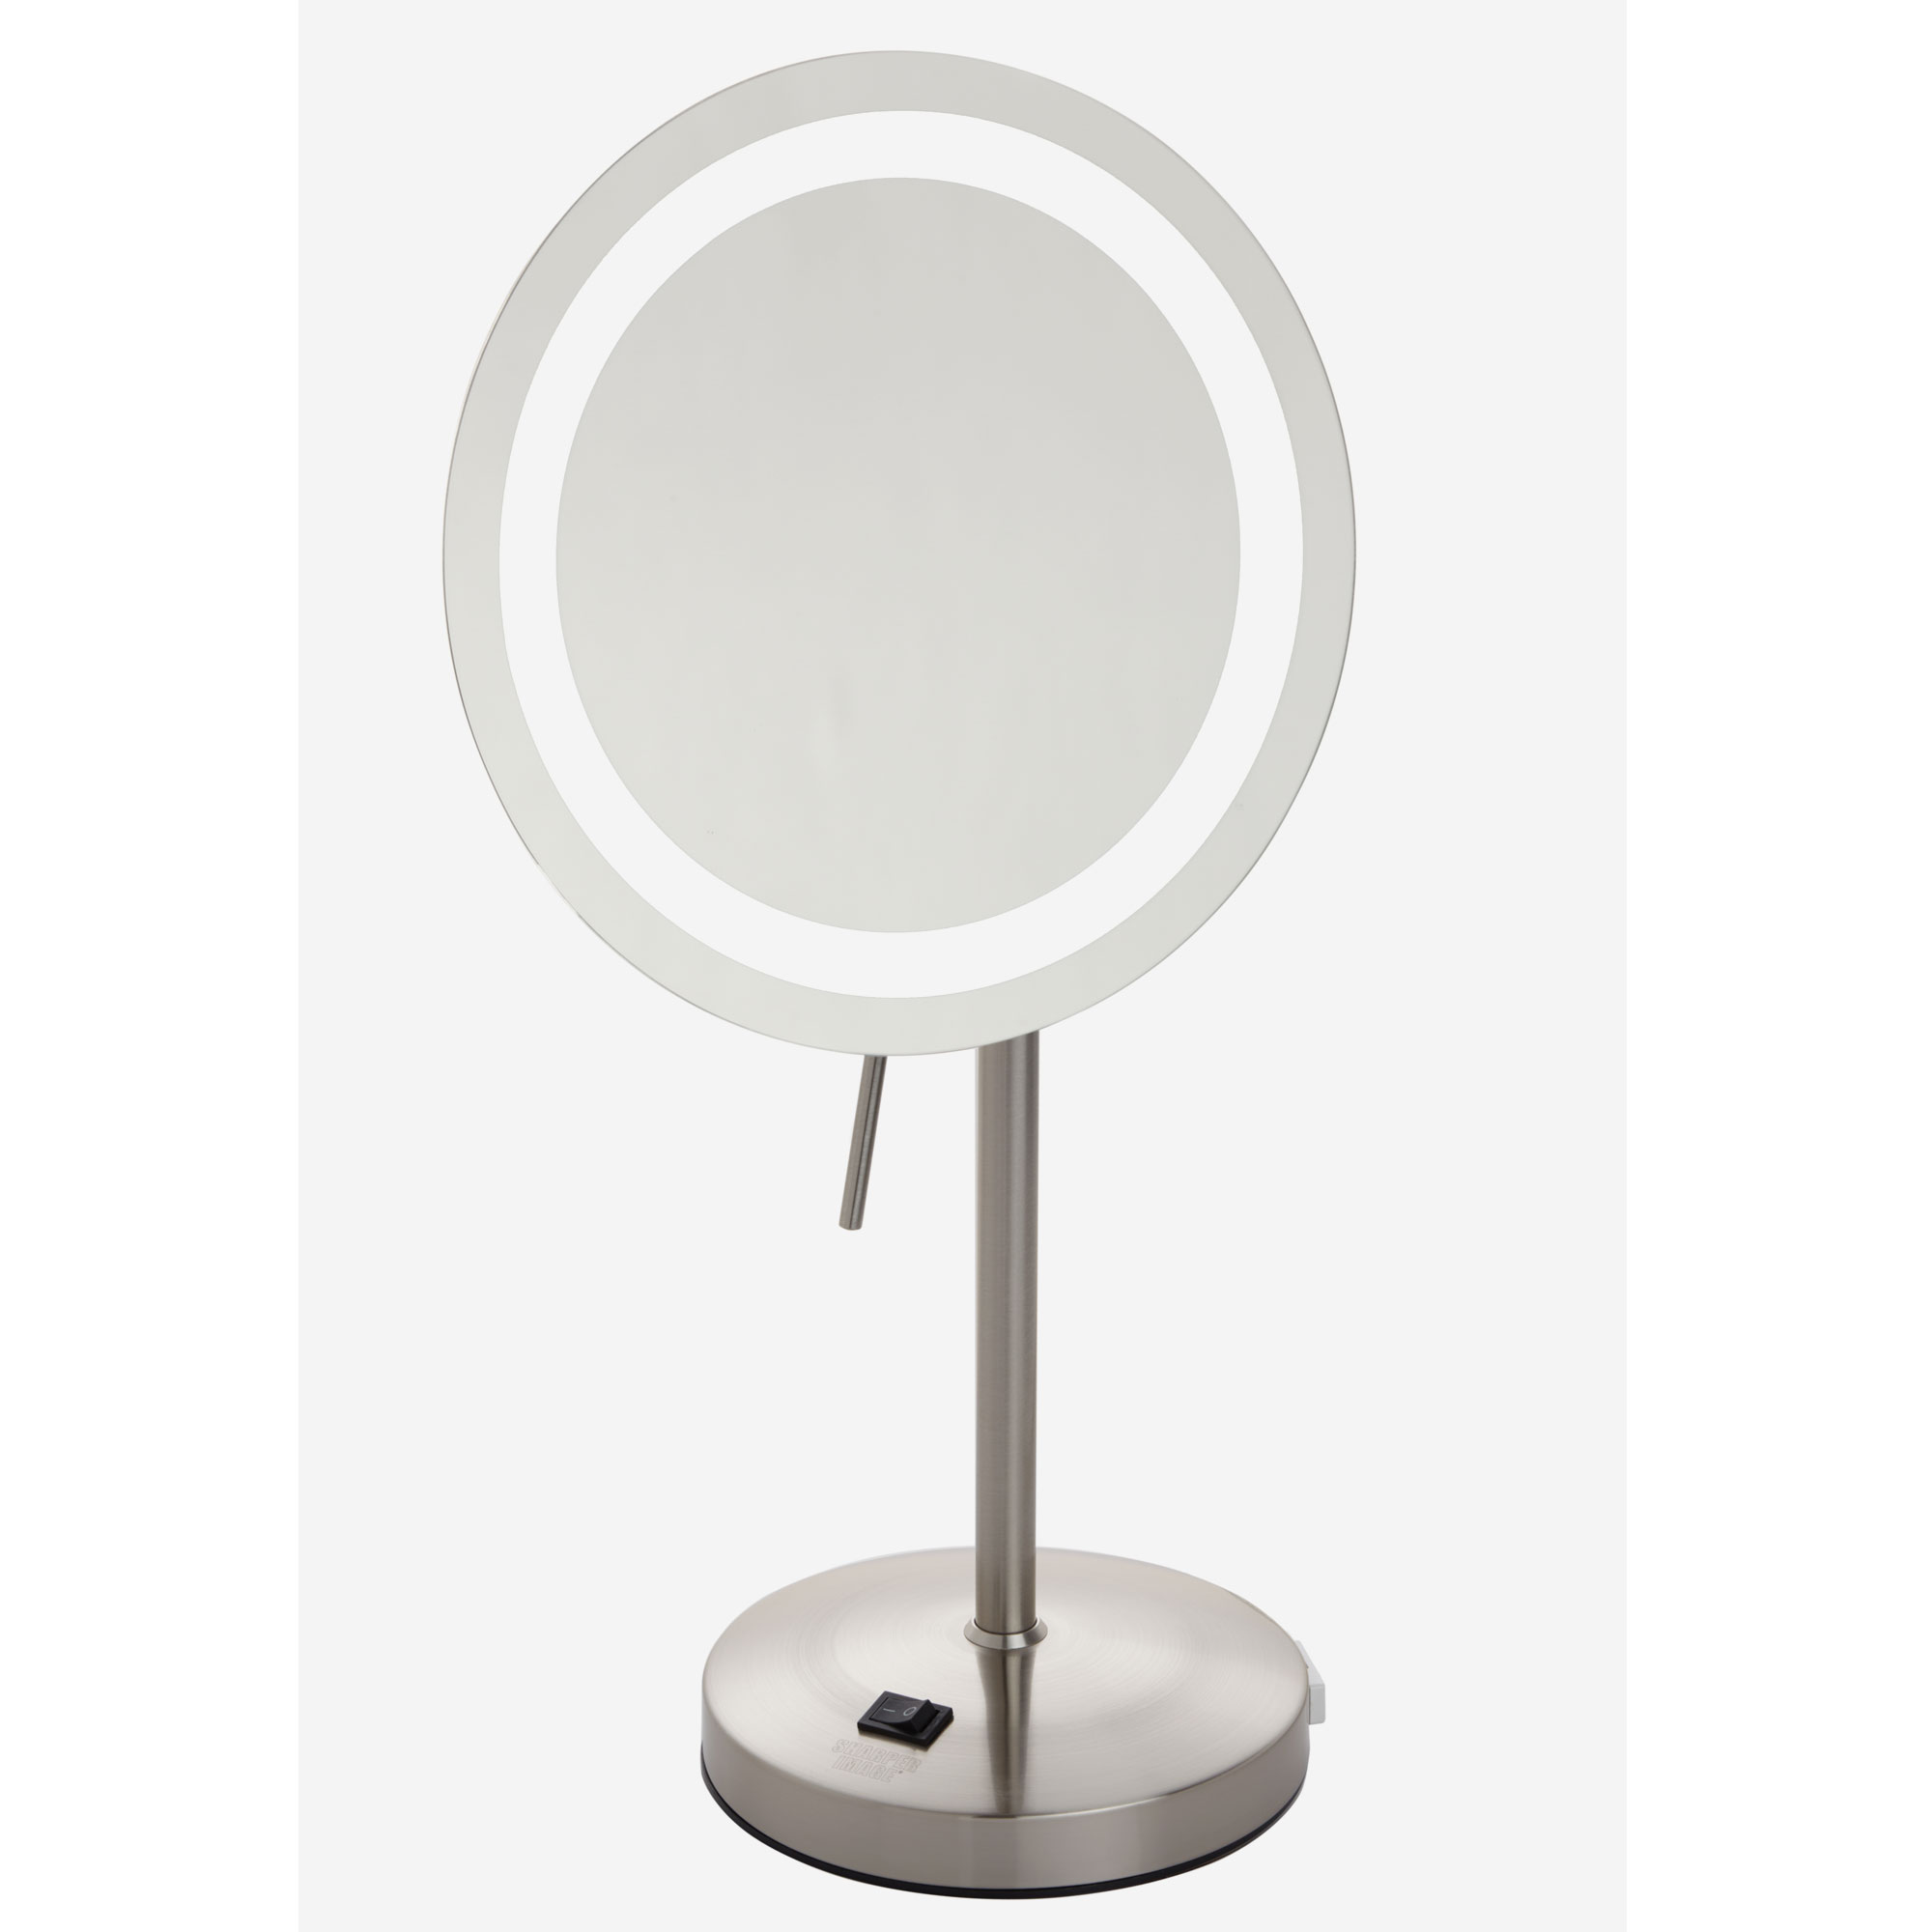 Led Lighted Tabletop Mirror 8x